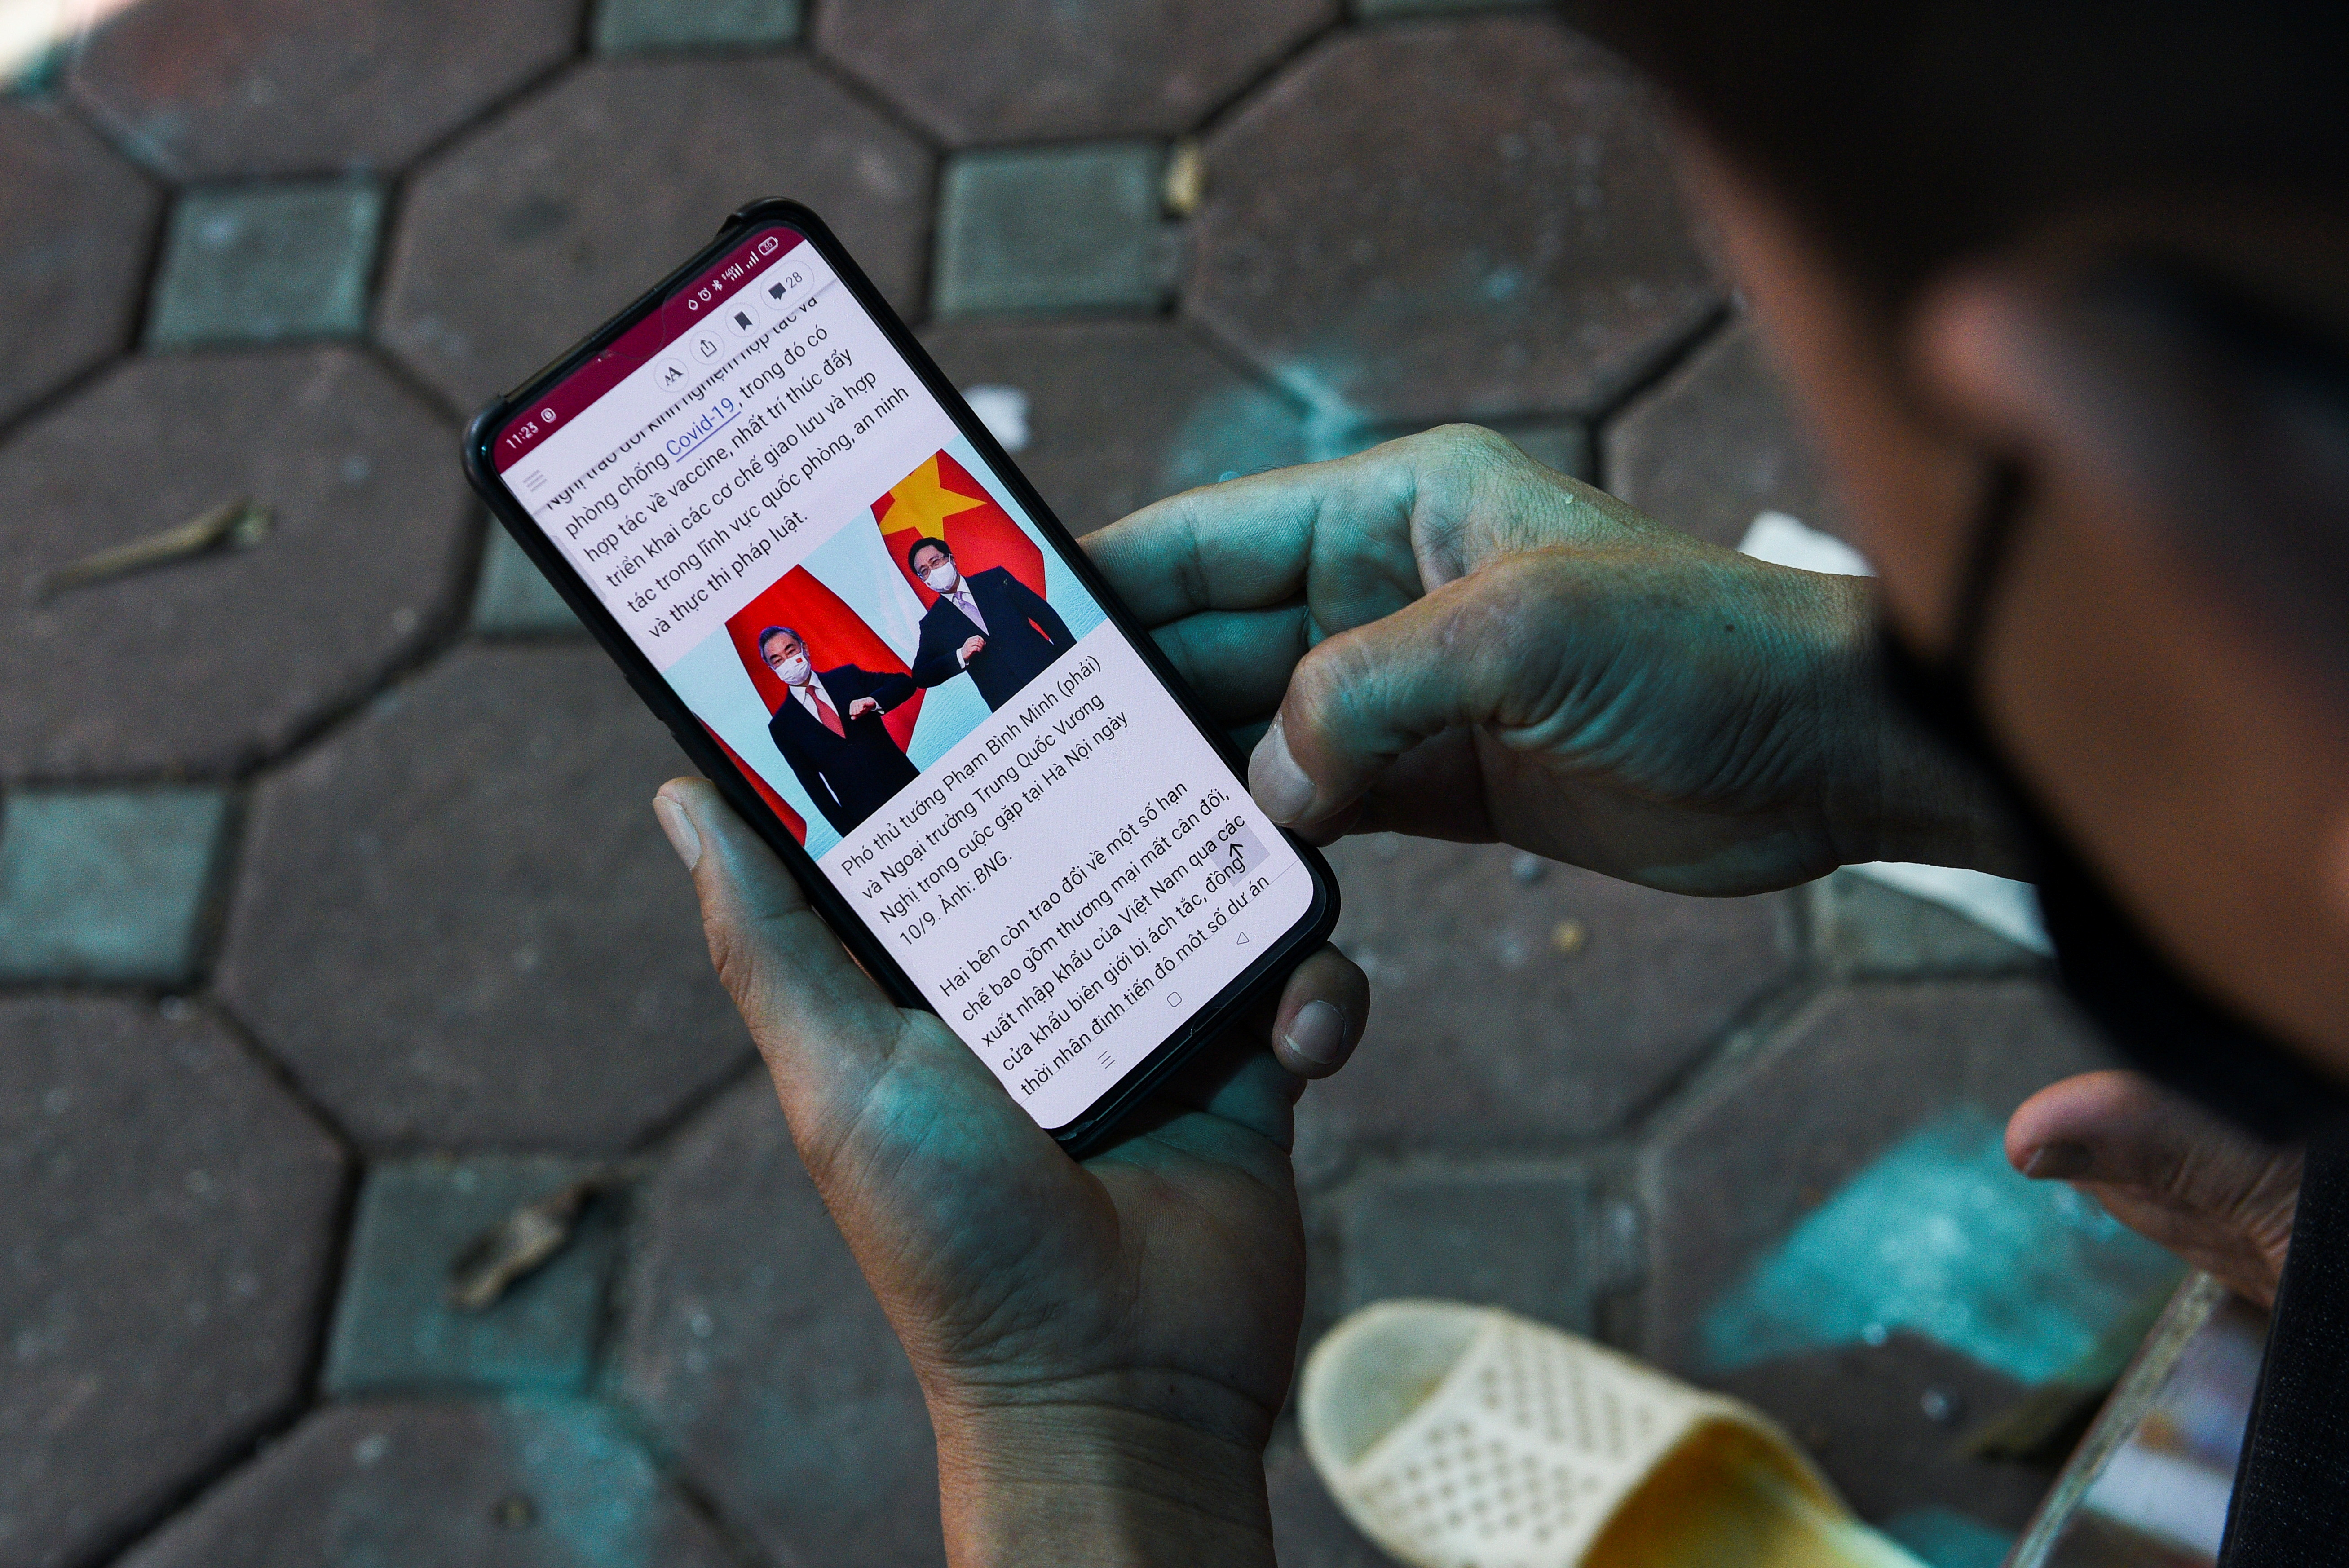 A man reads the news about Chinese foreign minister Wang Yi's visit to Vietnam, at a street in Hanoi, Vietnam, September 11, 2021. REUTERS/Stringer